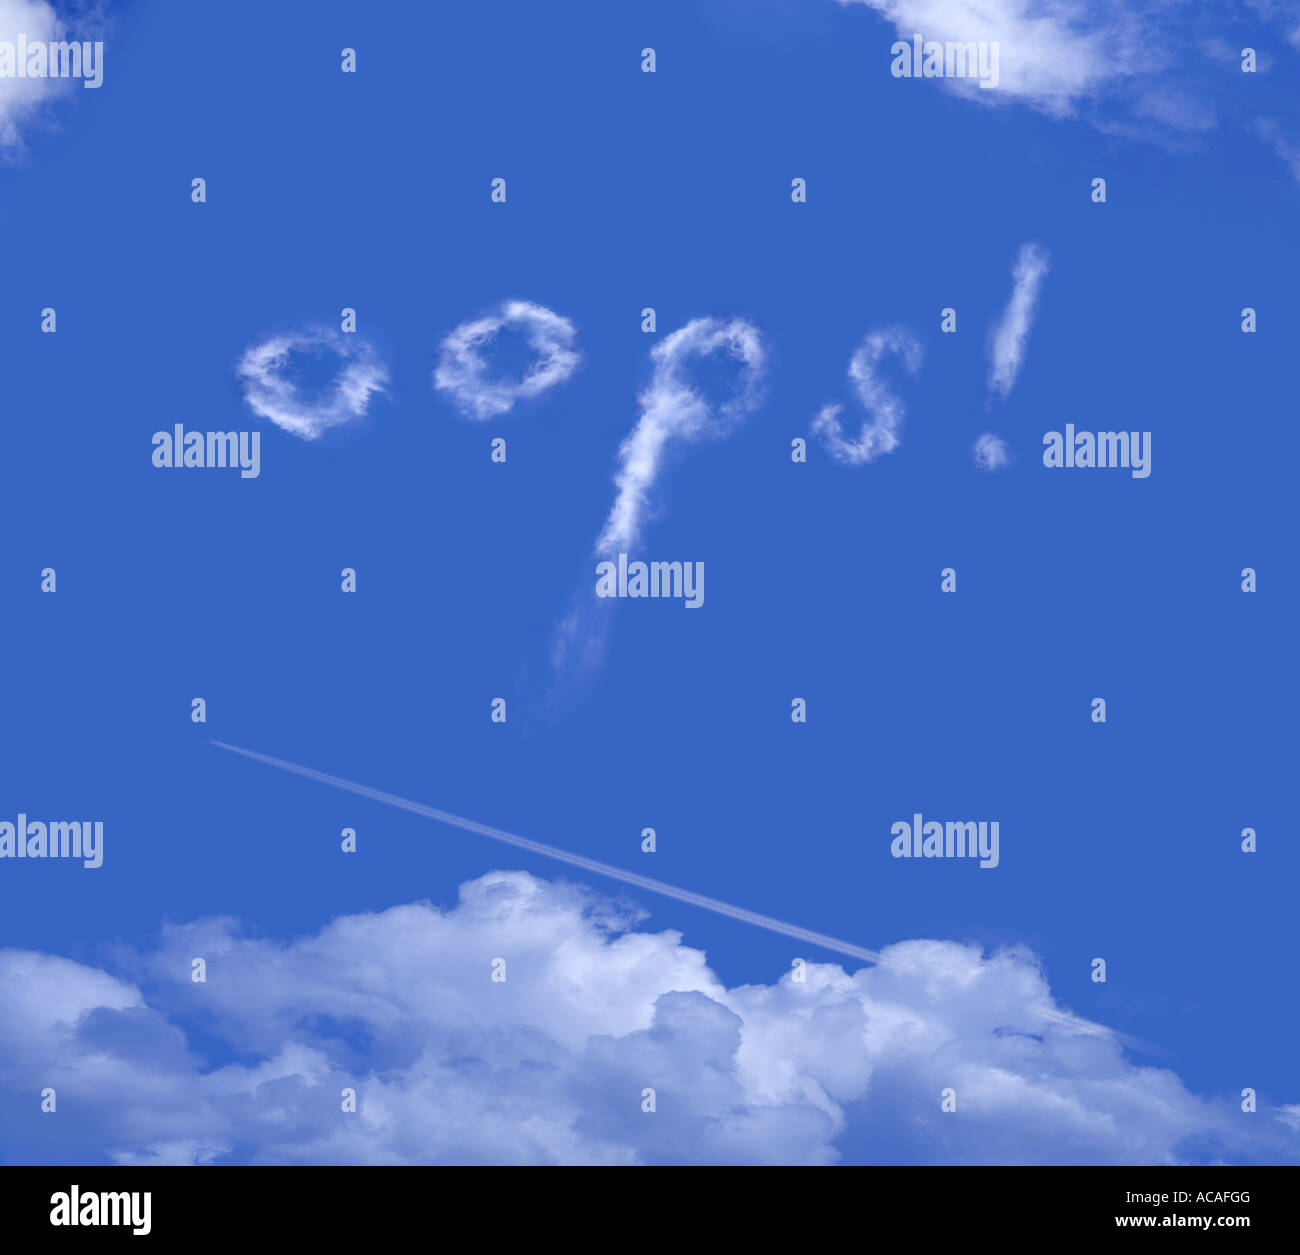 oops in clouds, words in clouds, lettering, letters - Stock Image